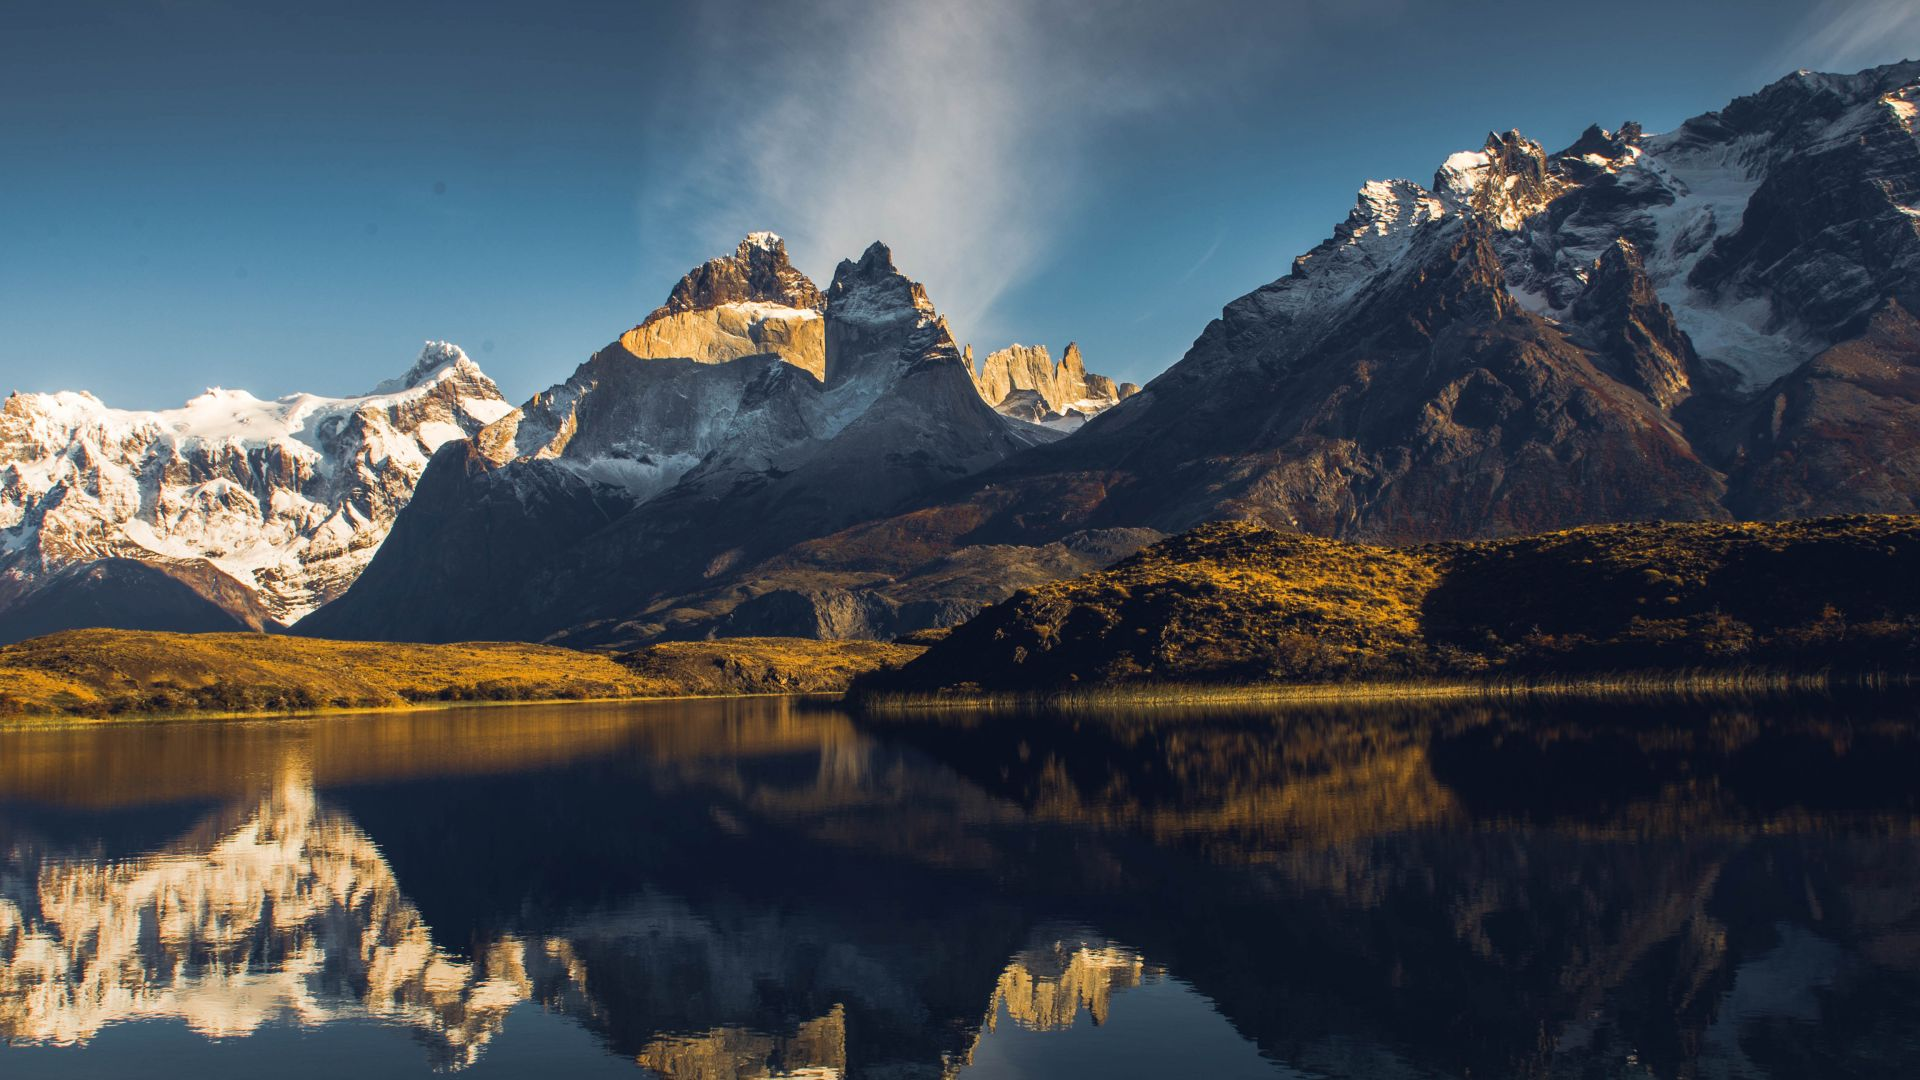 Lake Gray, Torres del Paine, Chile, mountains, 5k (horizontal)